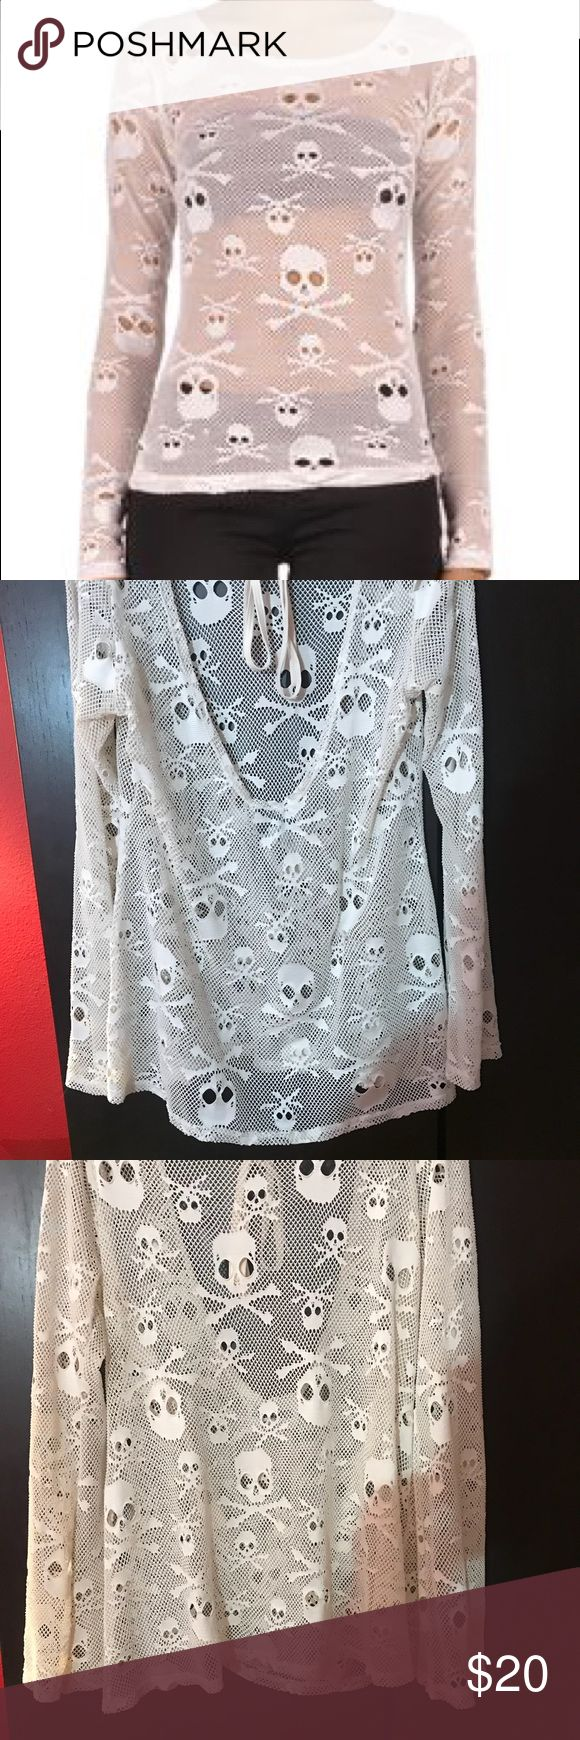 Royal Bones white fishnet skull tie back top Really cool fishnet too with long sleeves, a scoop back with a tie, and skulls all over. The white is more like a cream or an ivory white- not a Snow White. Shirt is in good condition, the fishnet is all intact no snags. Royal Bones Tops Tees - Long Sleeve